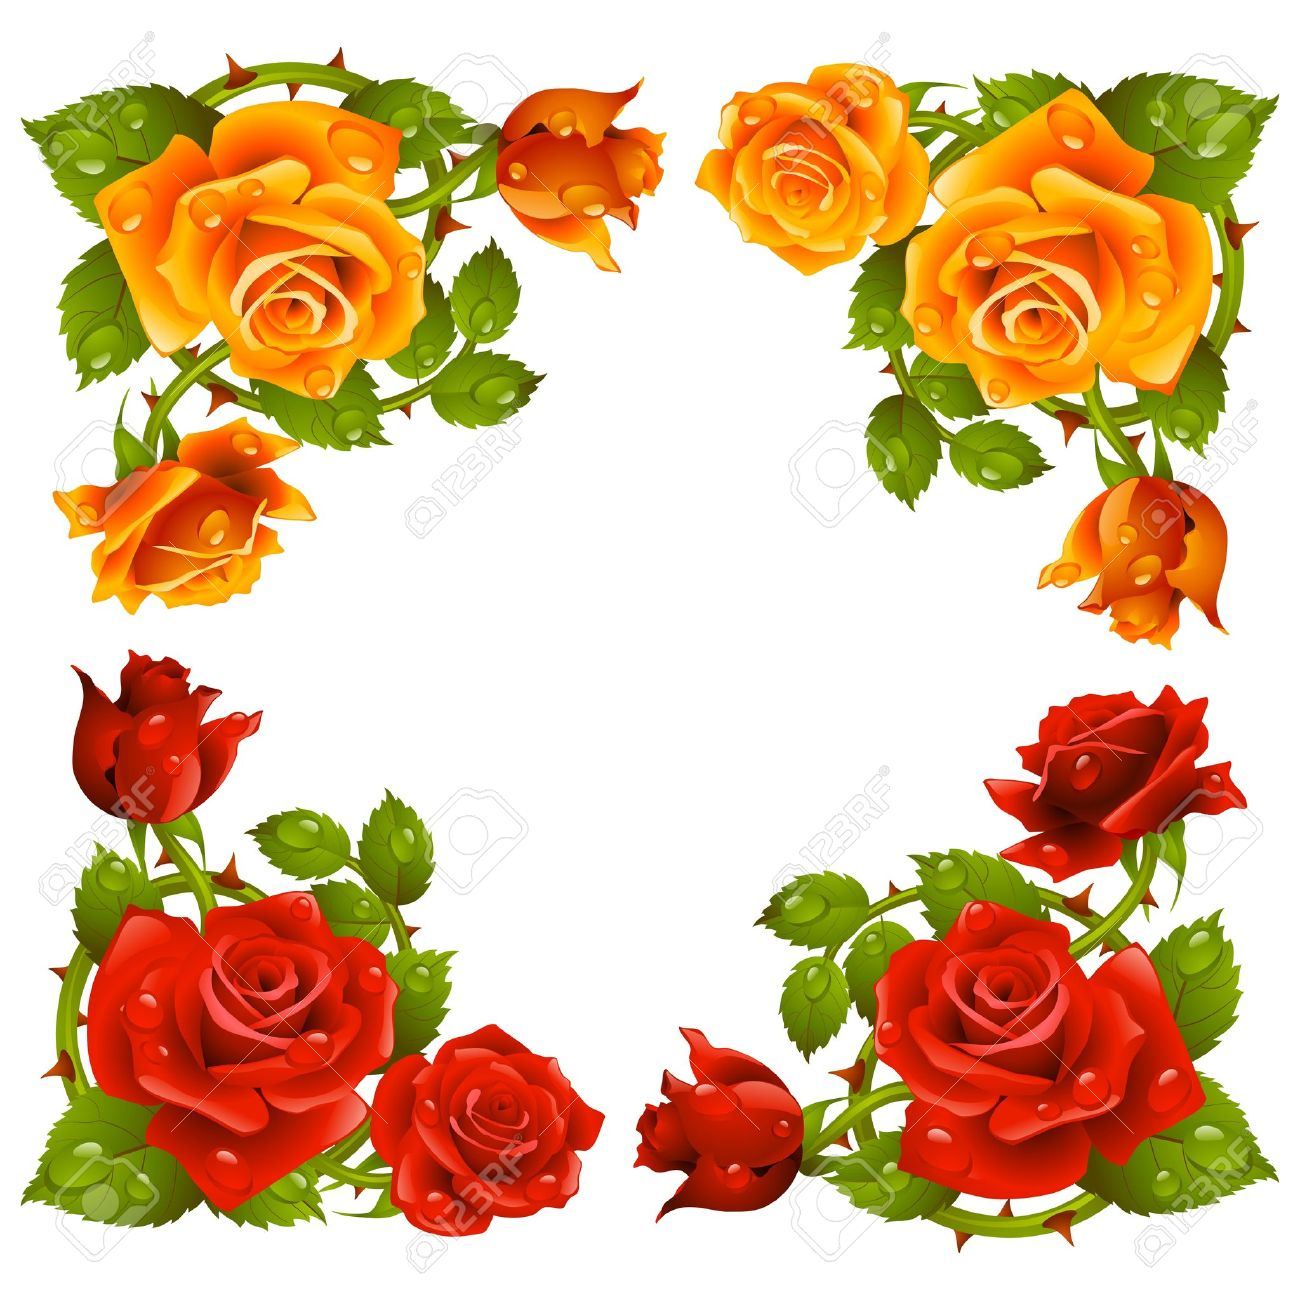 Vector rose corner isolated on white background. Red and yellow flowers. Stock Vector - 21050348